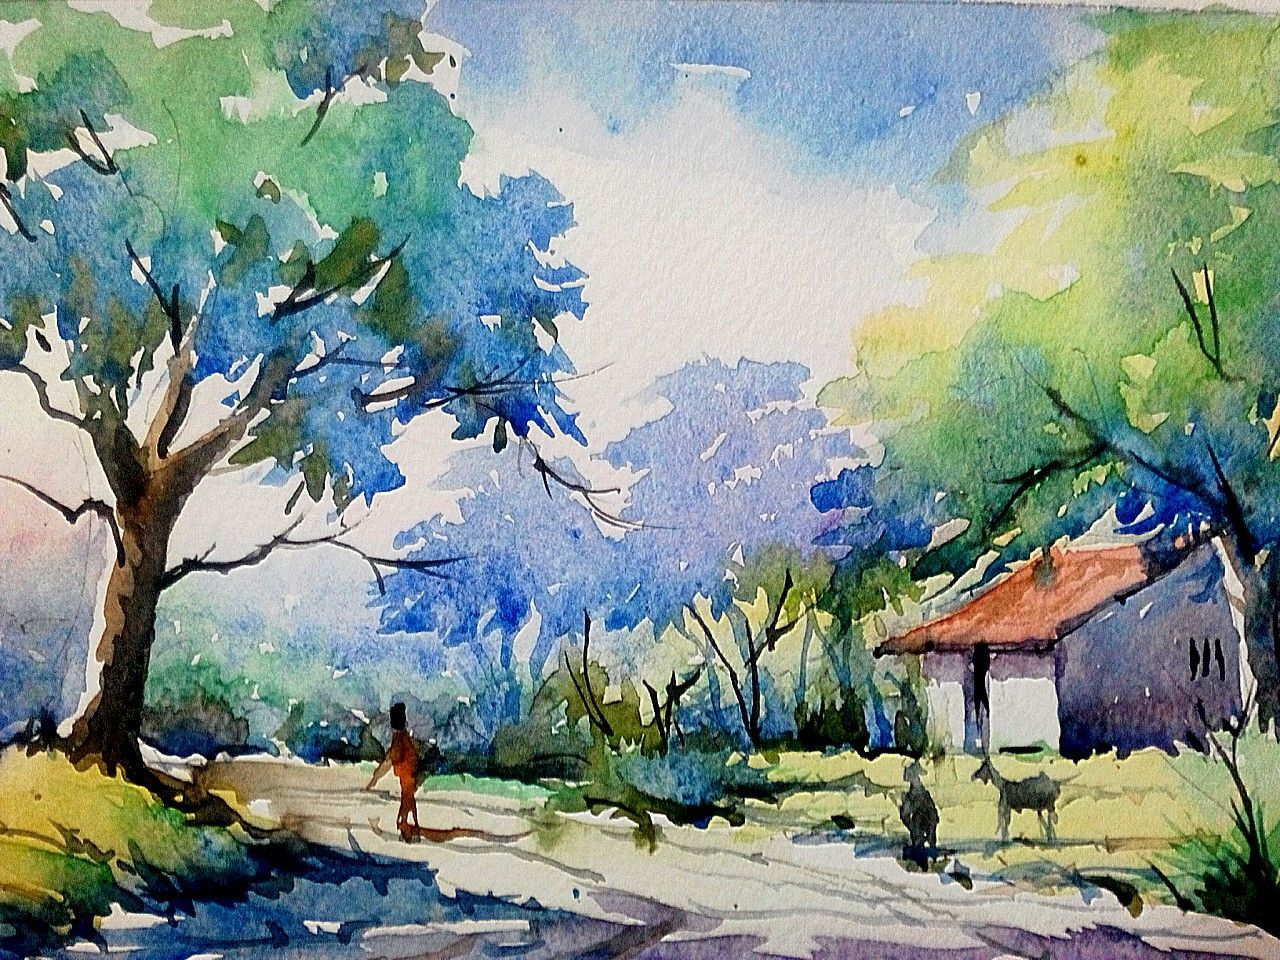 Pin By Bn Mecheri On Art1 Watercolor Scenery Watercolor